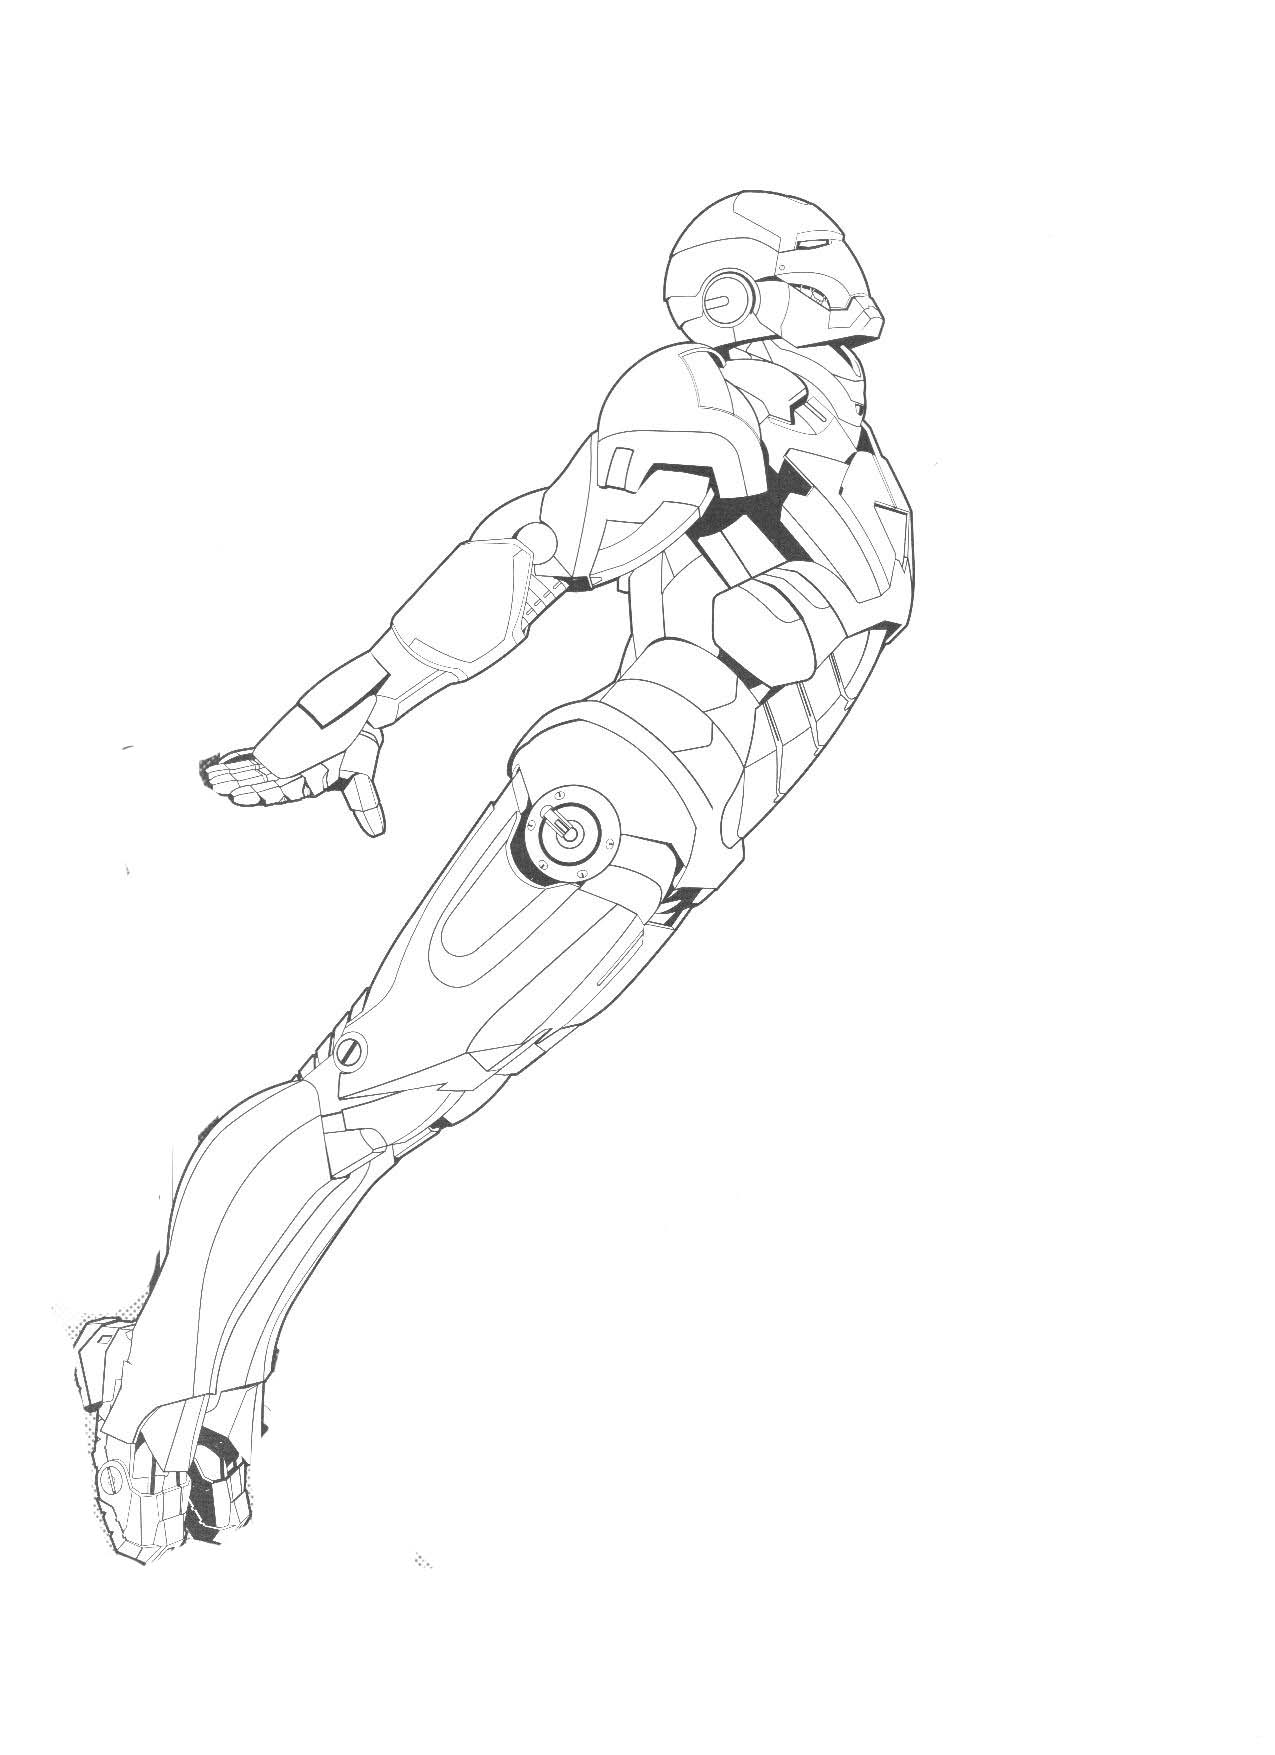 New iron man coloring page printable coloring pages for Iron man 2 coloring pages to print